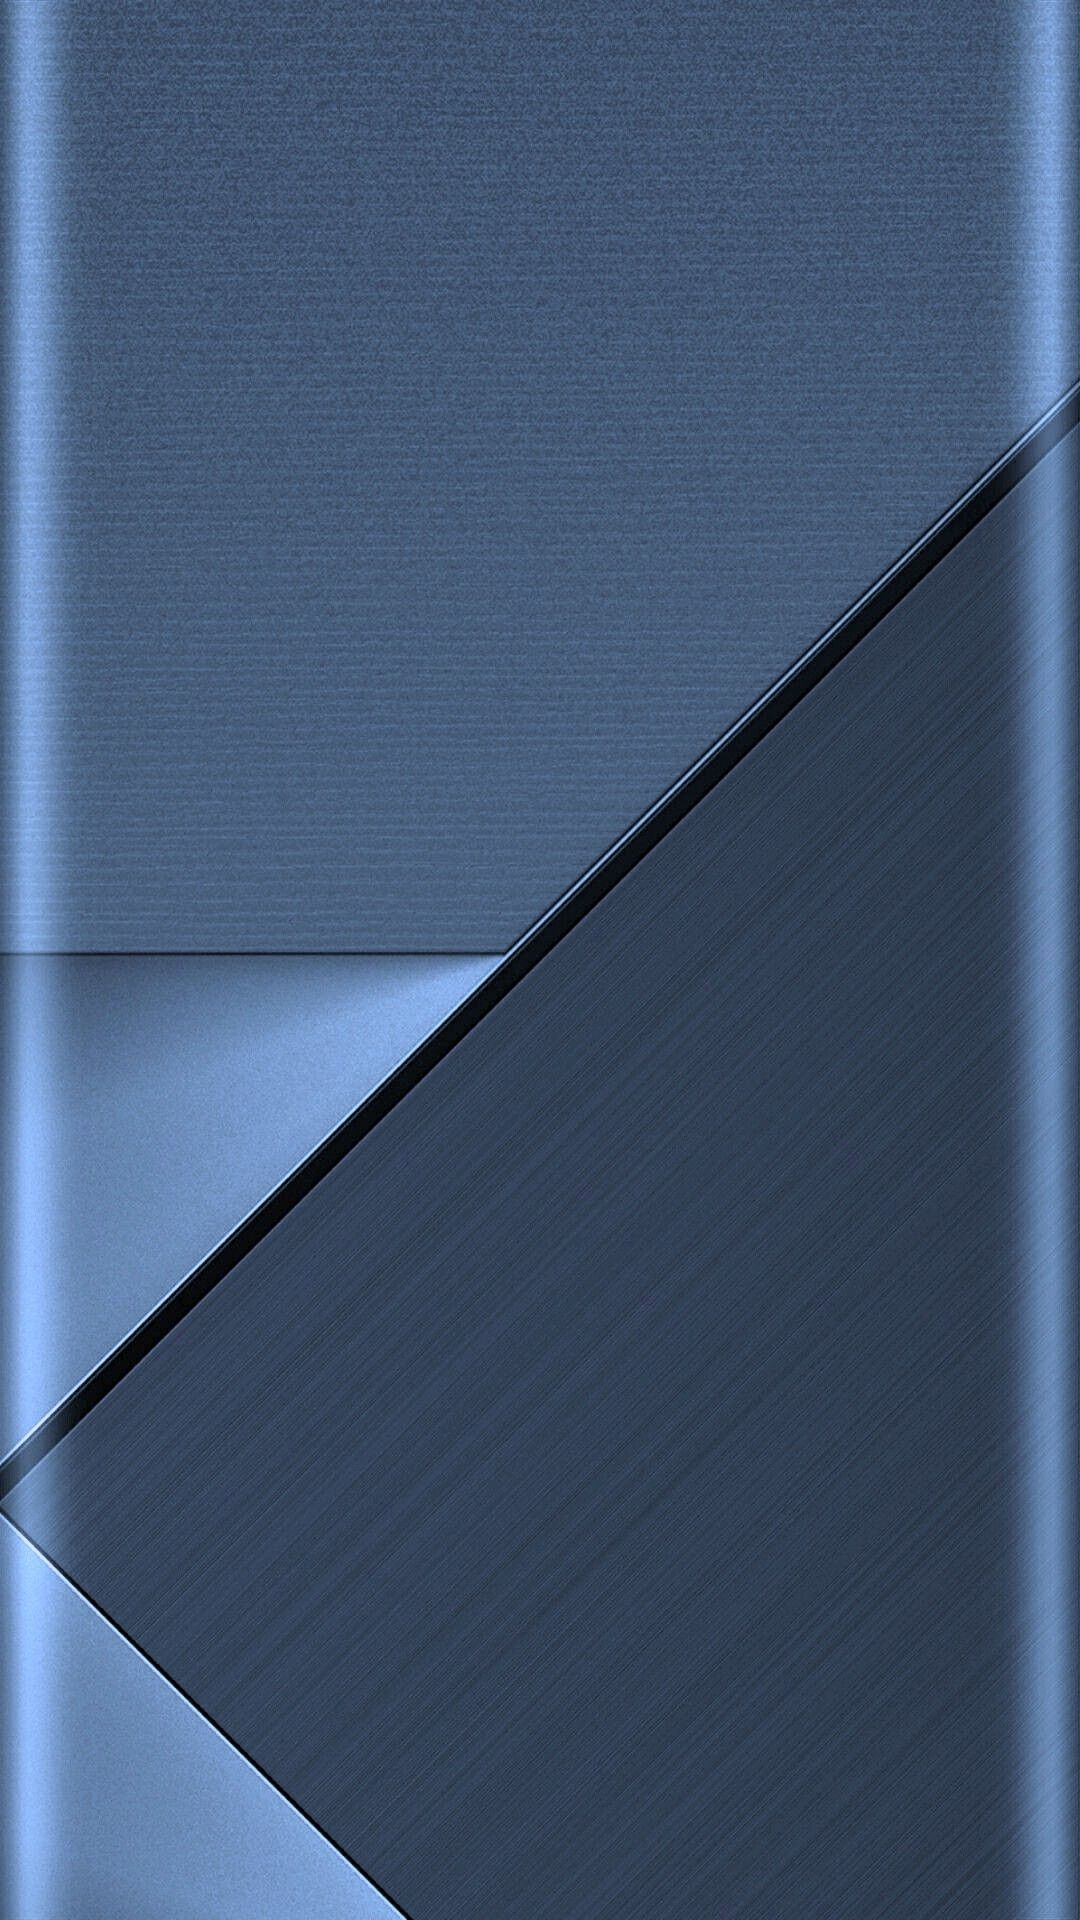 Blue Geometric Abstract Wallpaper Geometric abstract